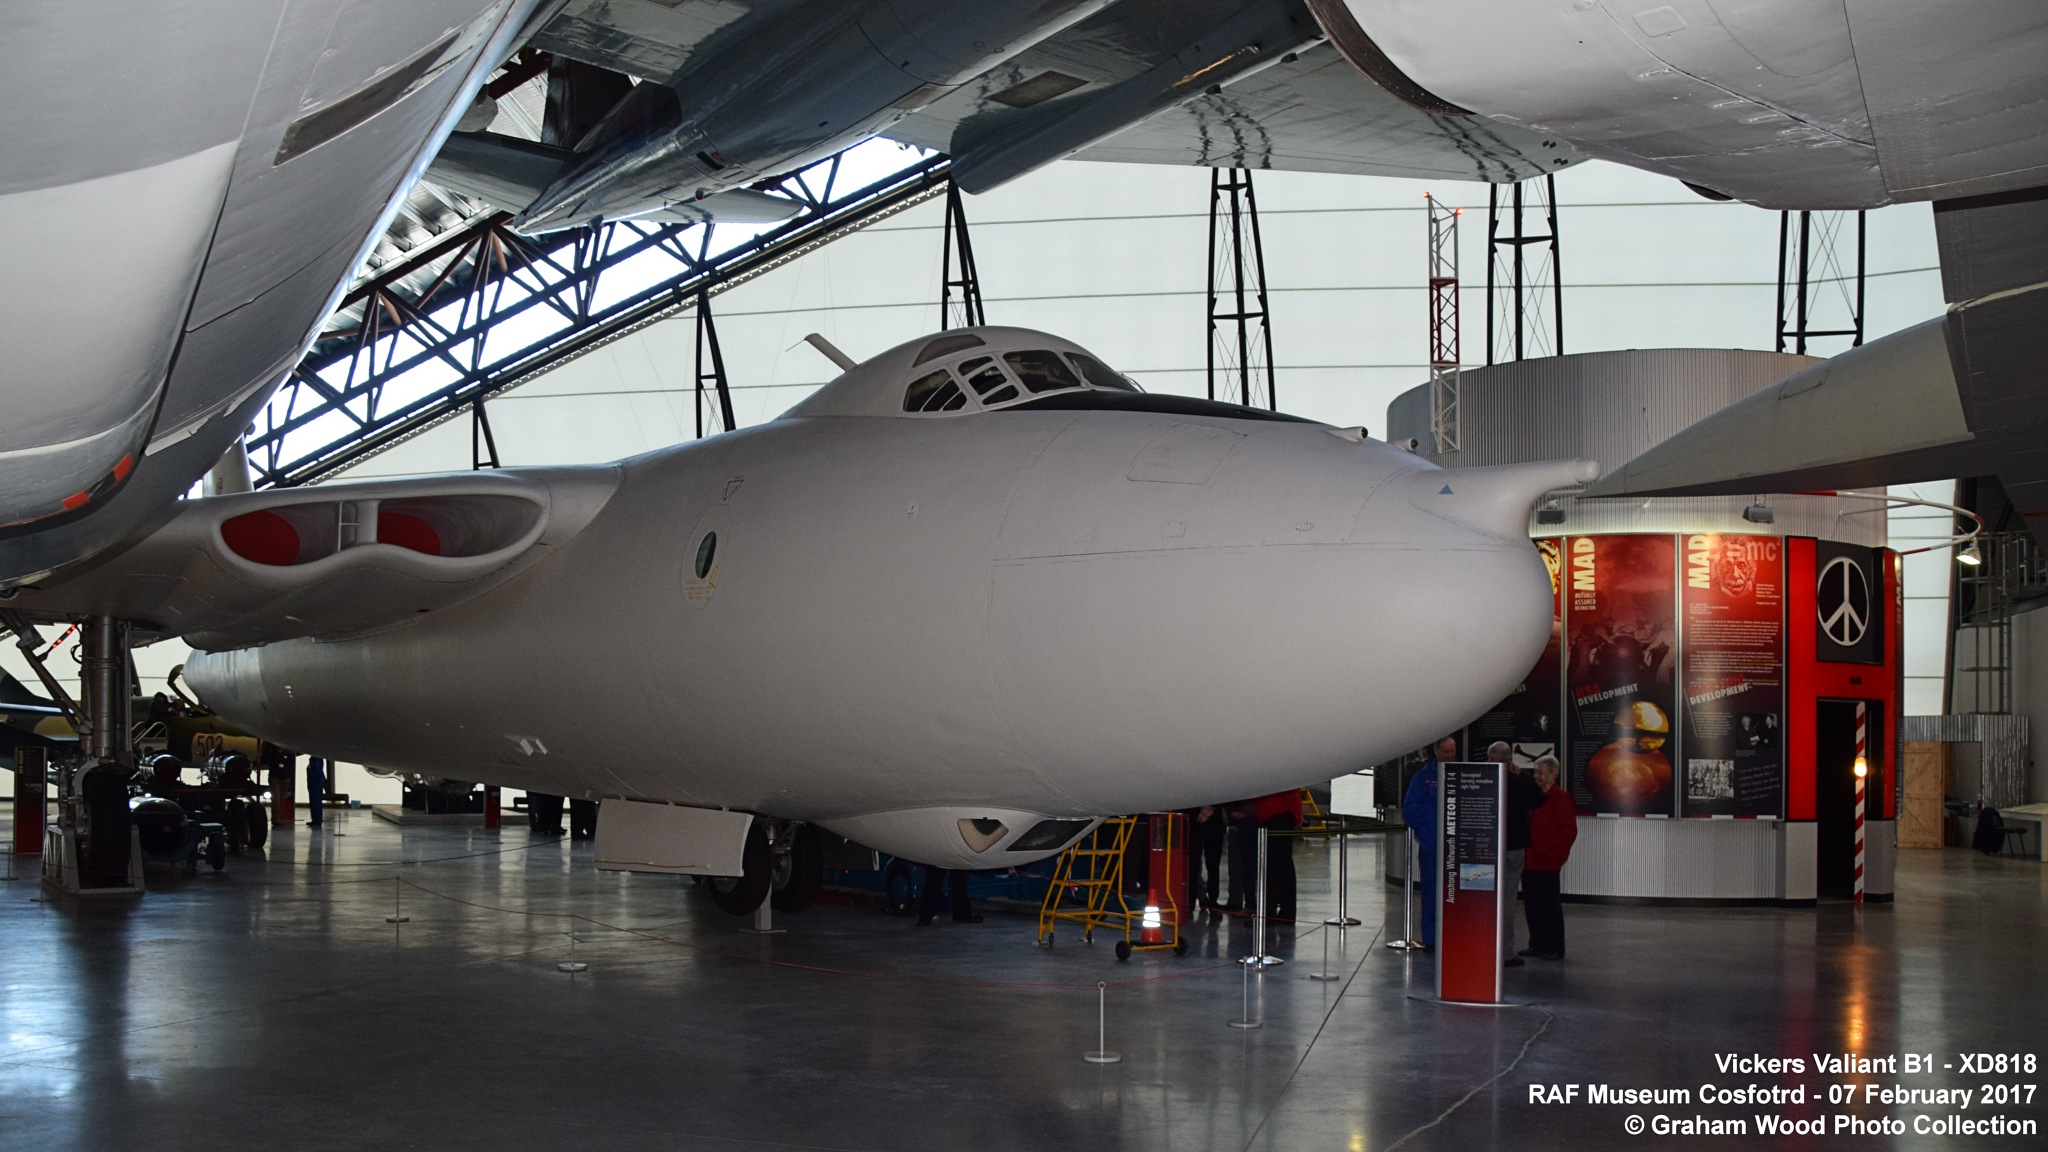 Vickers Valiant B1 - XD818 by Graham Wood Photo Collection